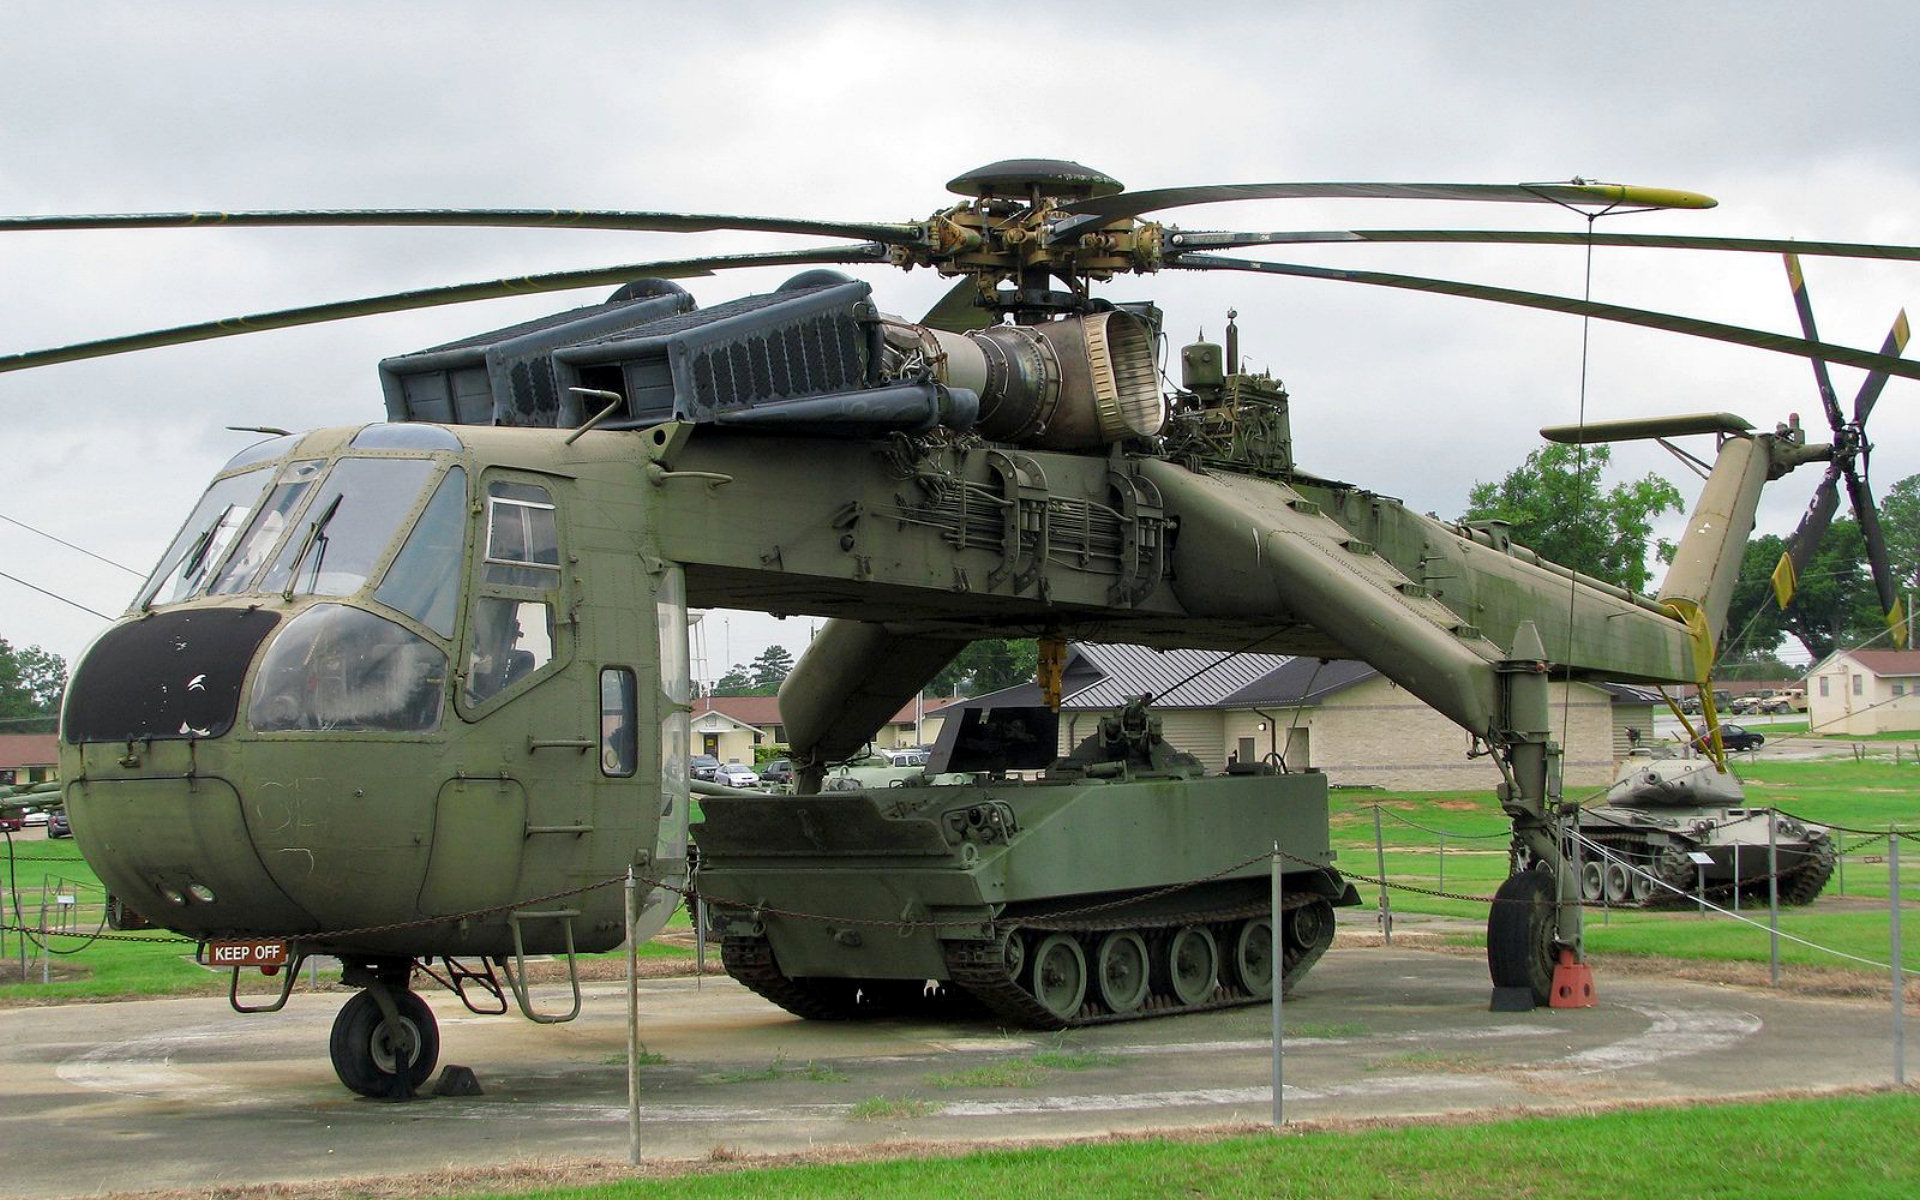 russian military helicopters sale with Big on Watch also 250909 russian french aphibious ship besides How Can A Helicopter Be Designed Without A Tail Rotor additionally K Max Unmanned Aircraft System additionally Big.